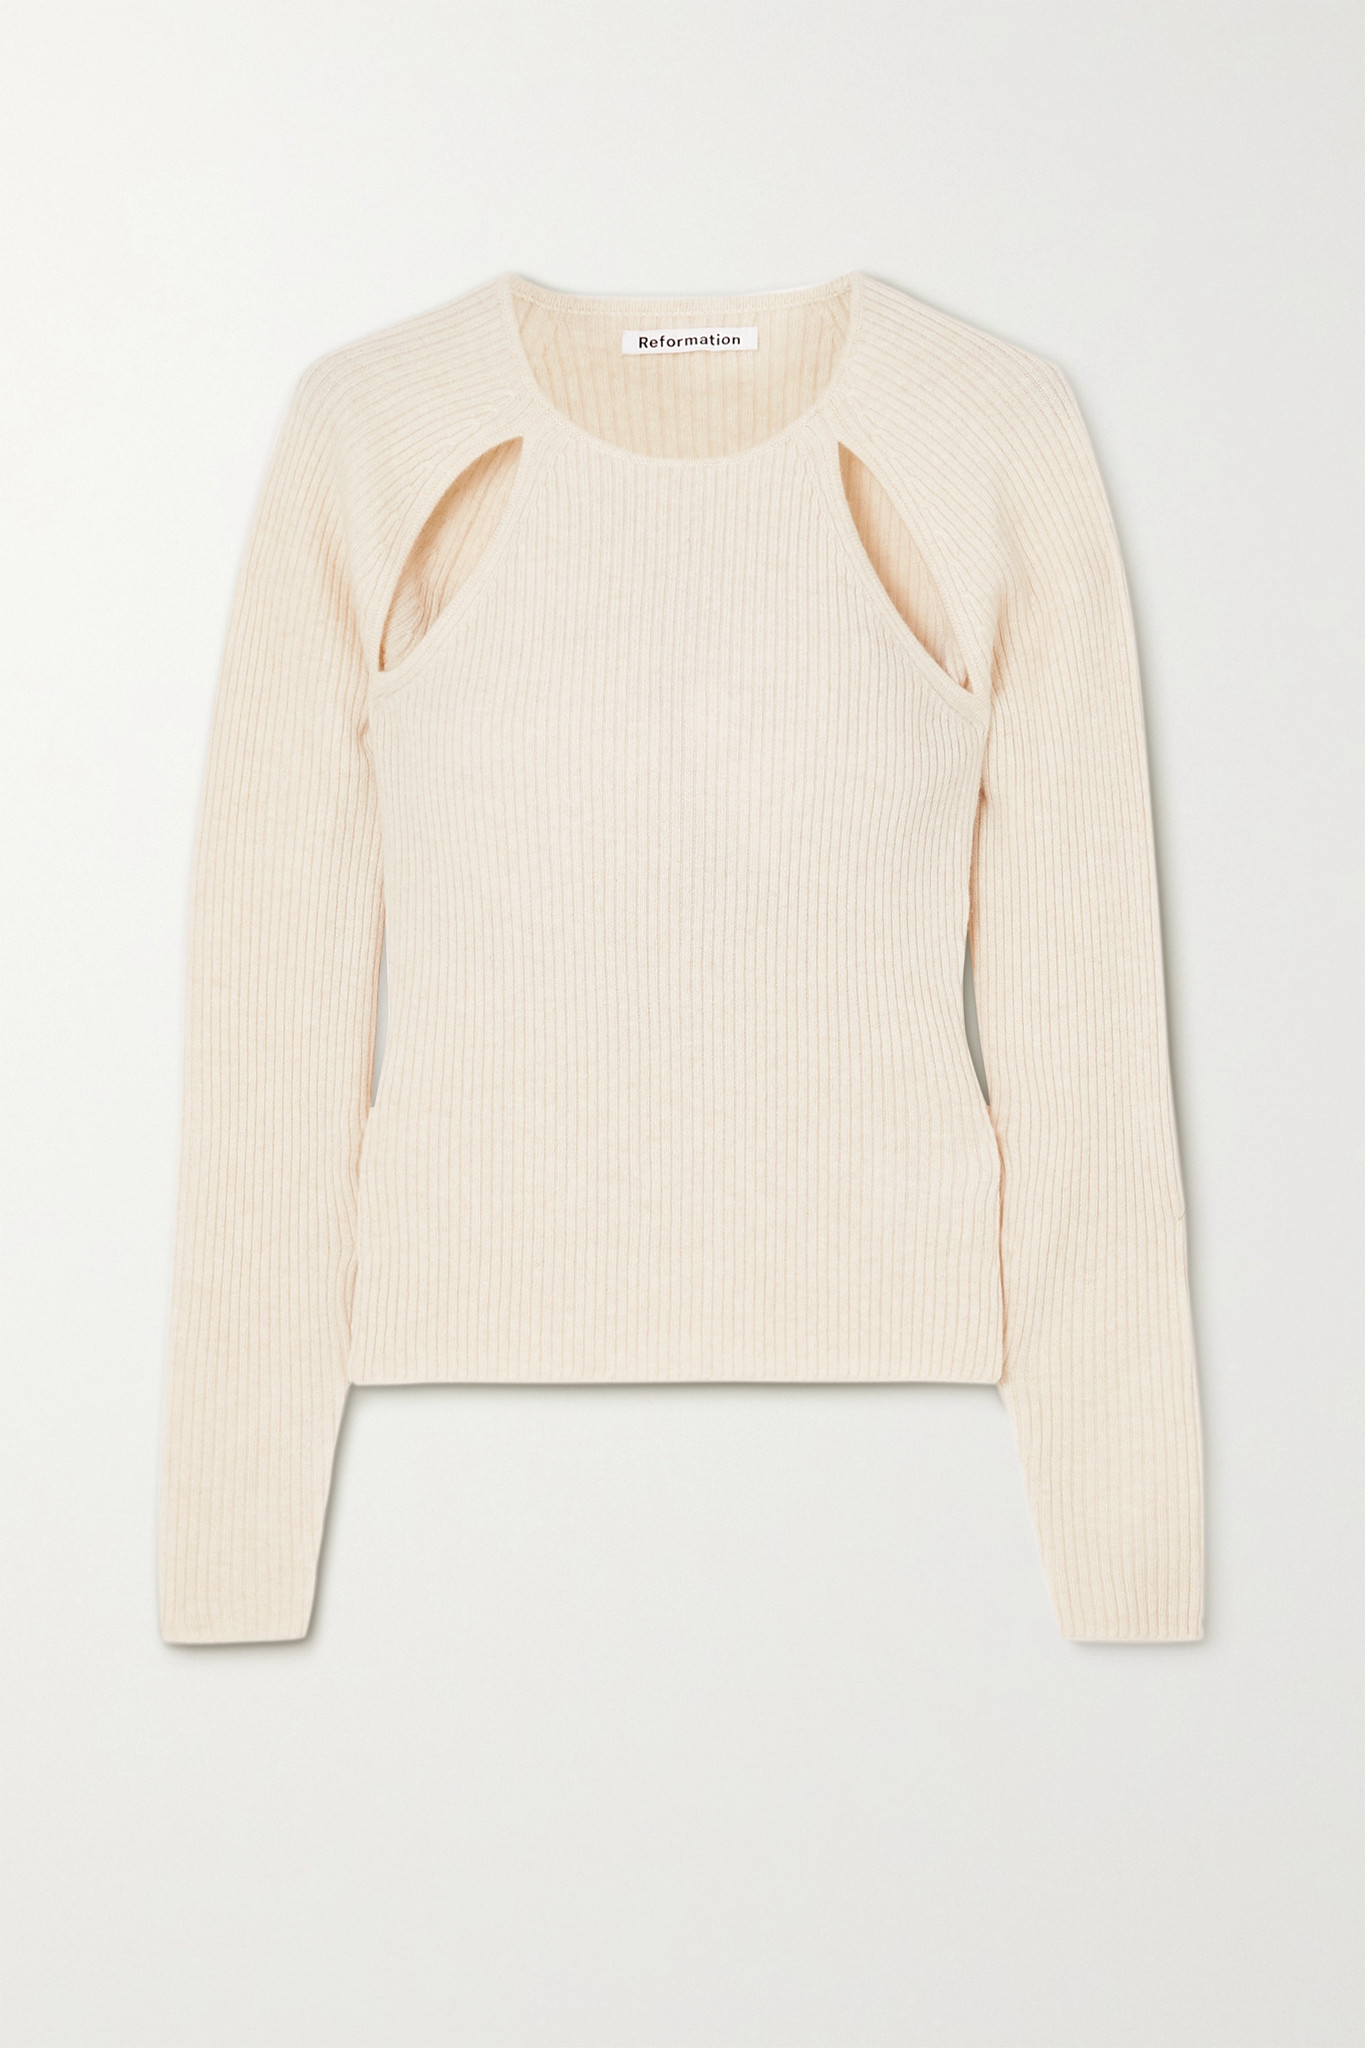 REFORMATION - + Net Sustain Basilica Cutout Ribbed Recycled Cashmere-blend Sweater - Ivory - medium